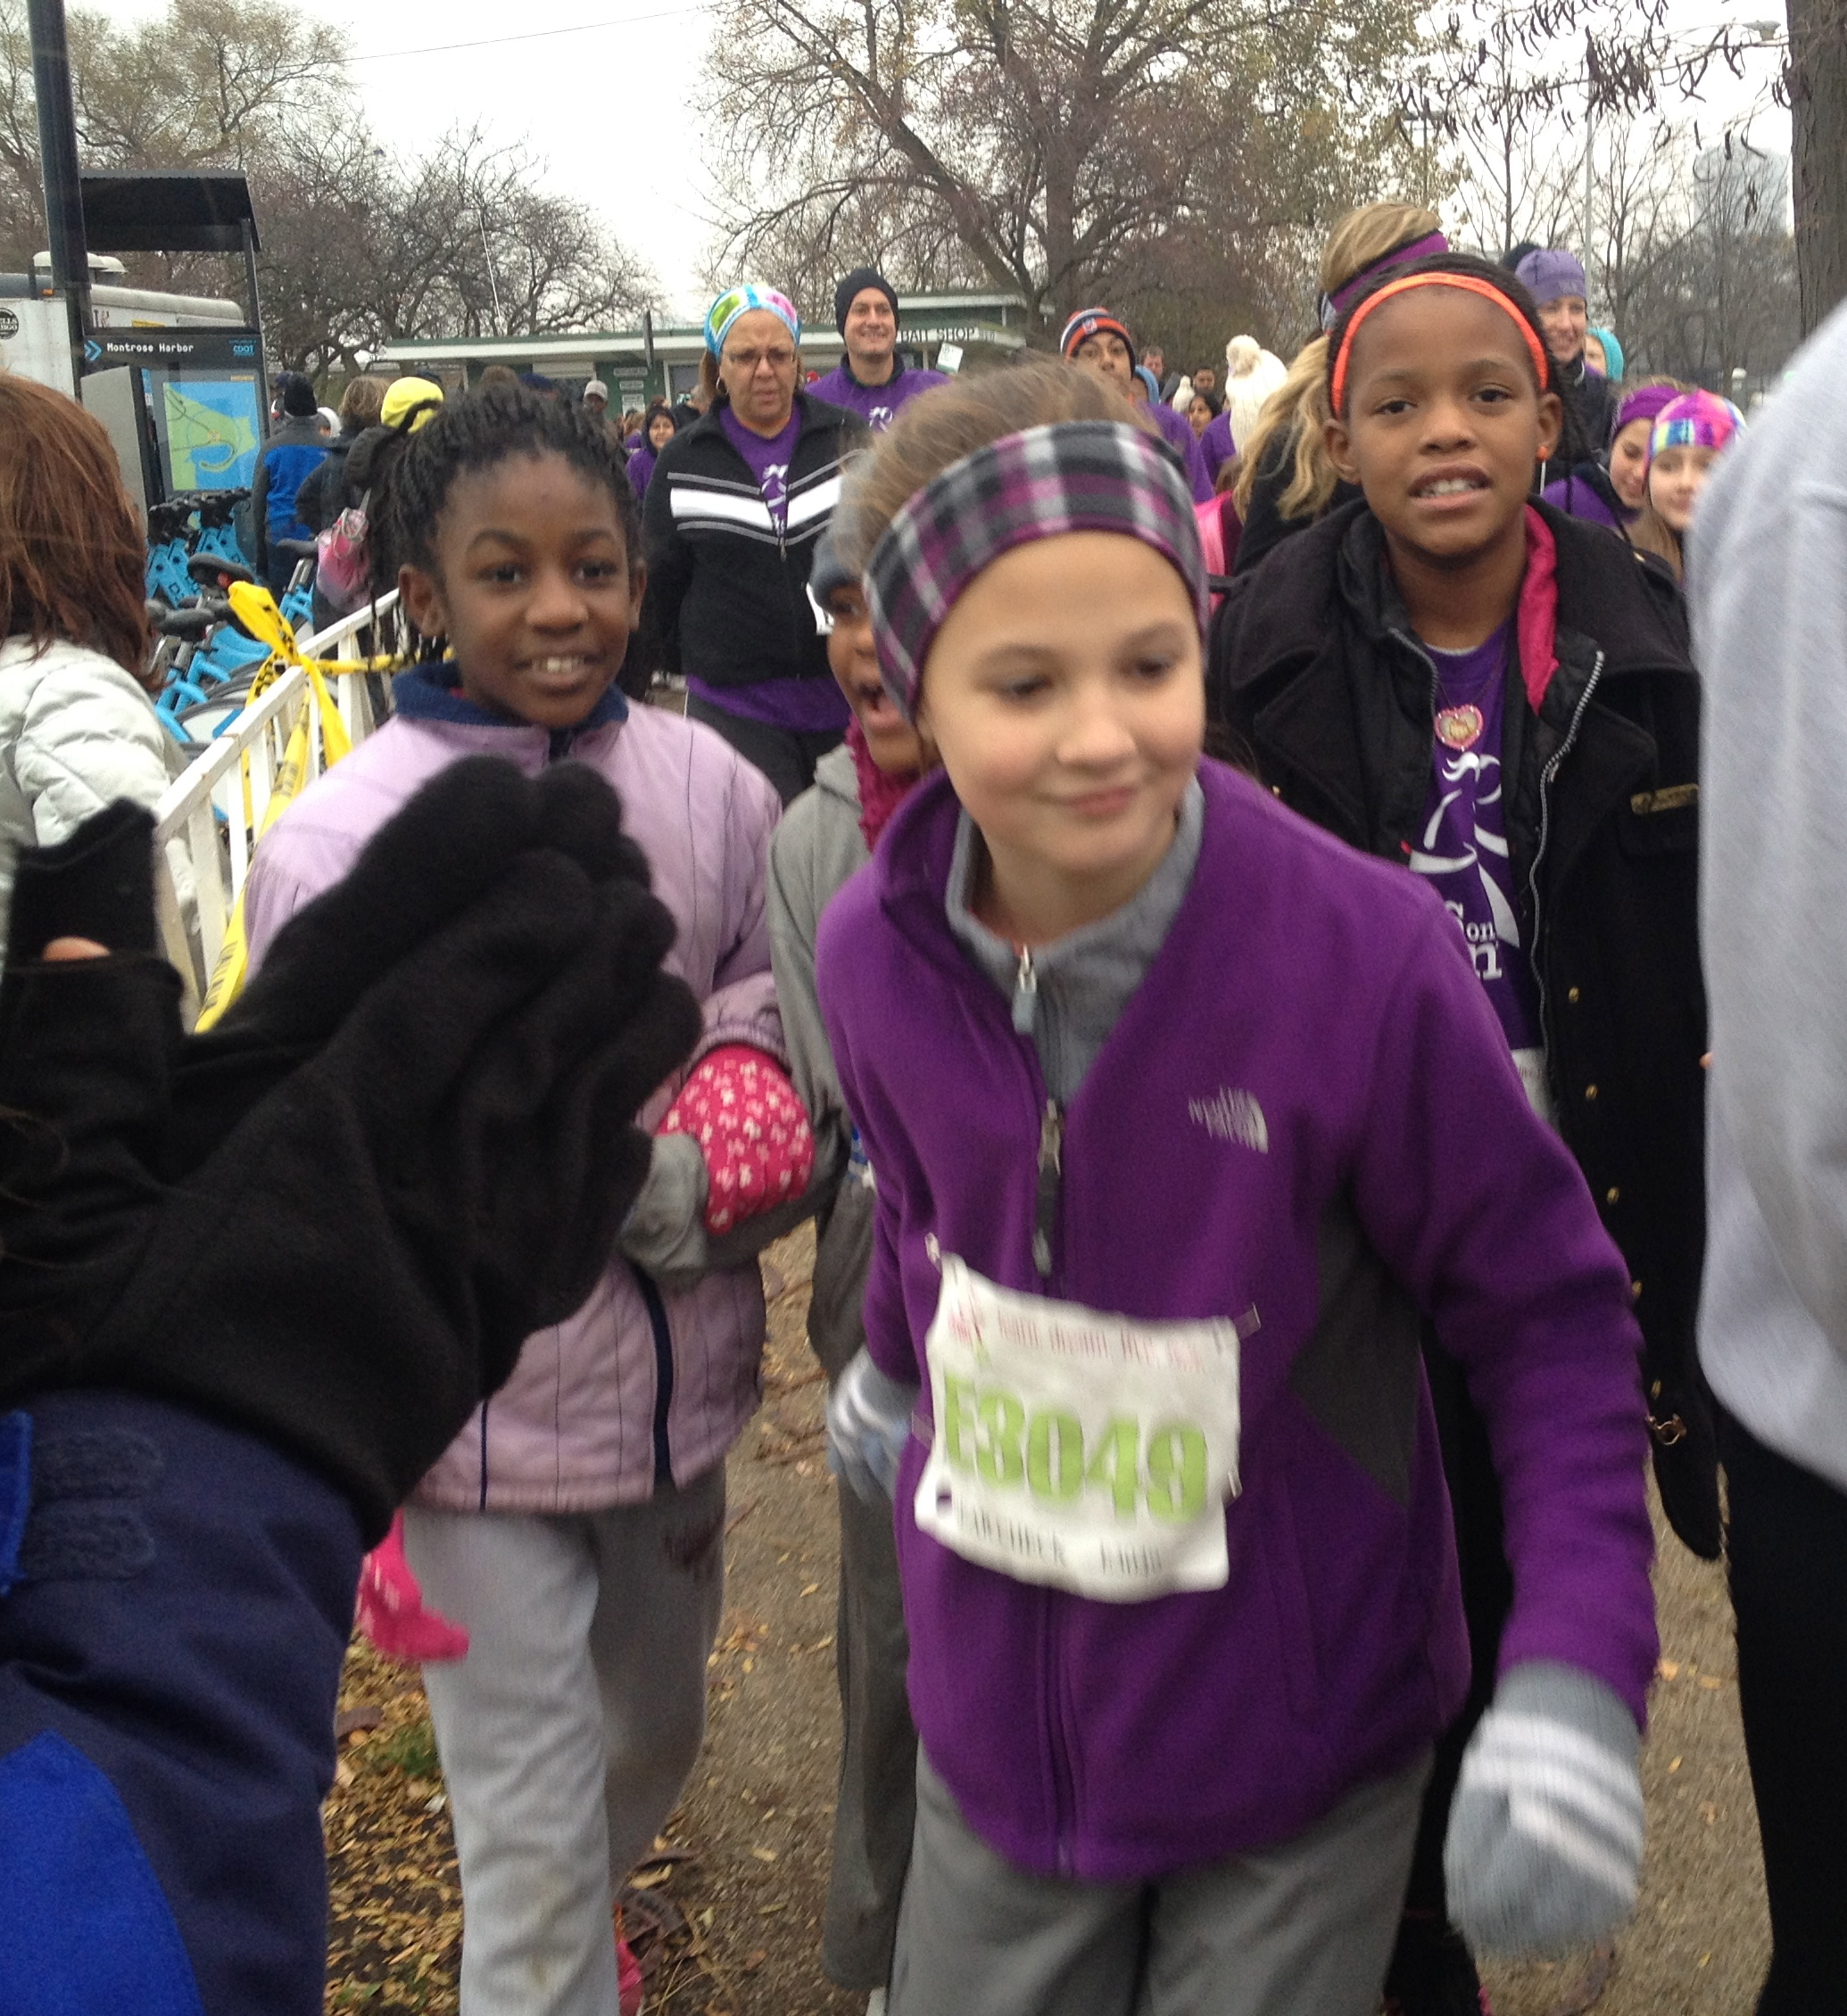 Girls vie for the perfect starting position before the Fall GOTR 5k